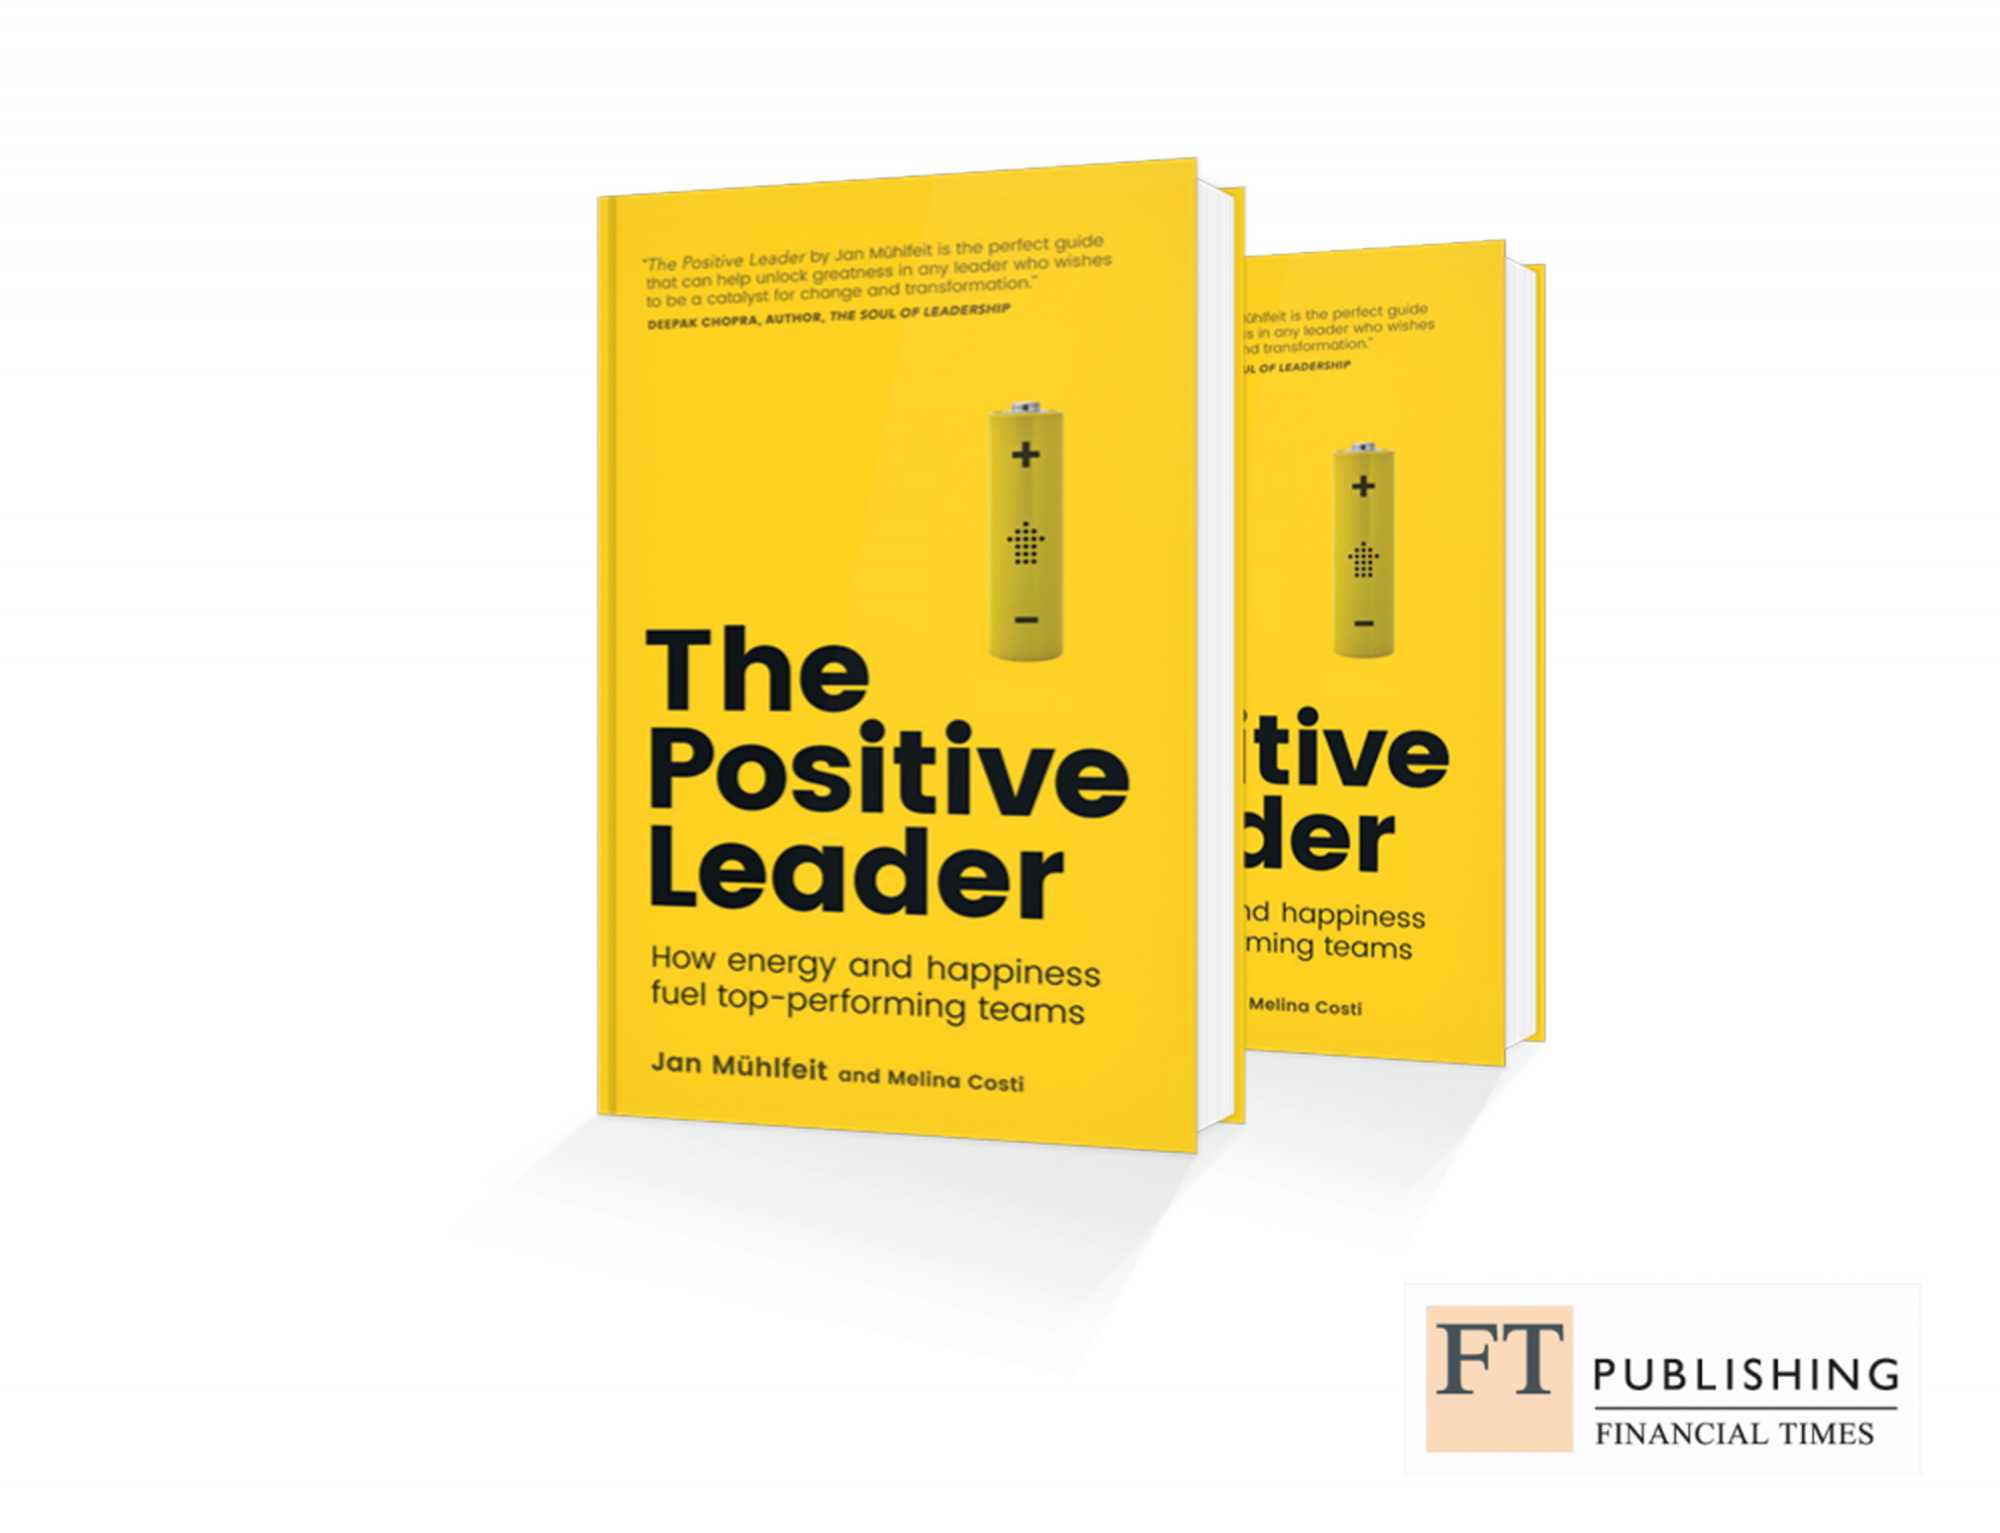 New book The Positive Leader